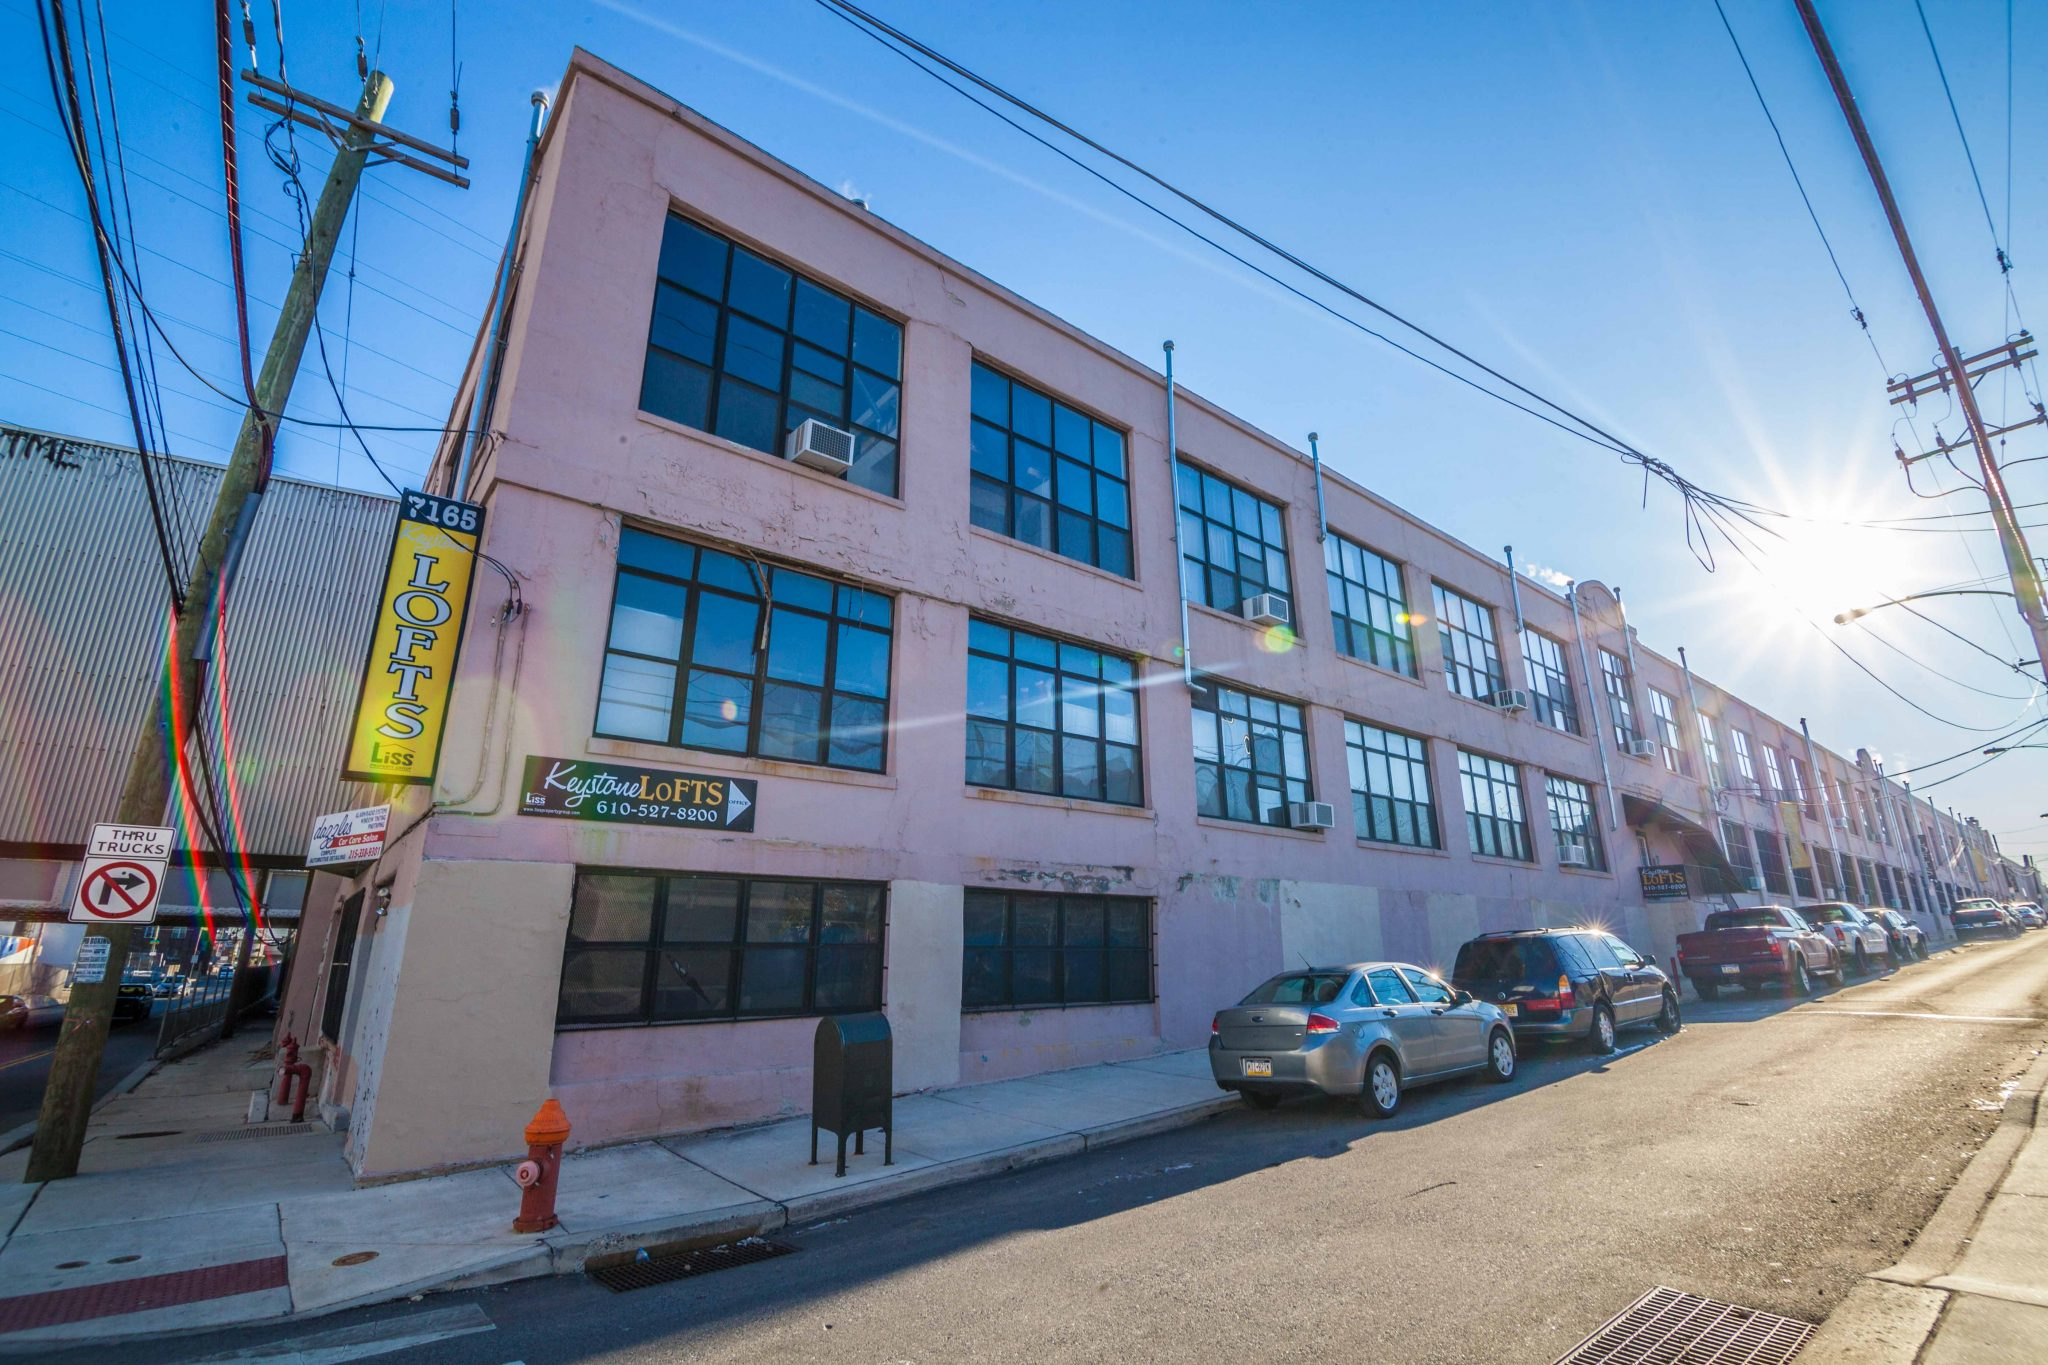 The Keystone Lofts Apartment Building Was Recently Sold For 7 9 Million Source Rittenhouse Realty Advisors